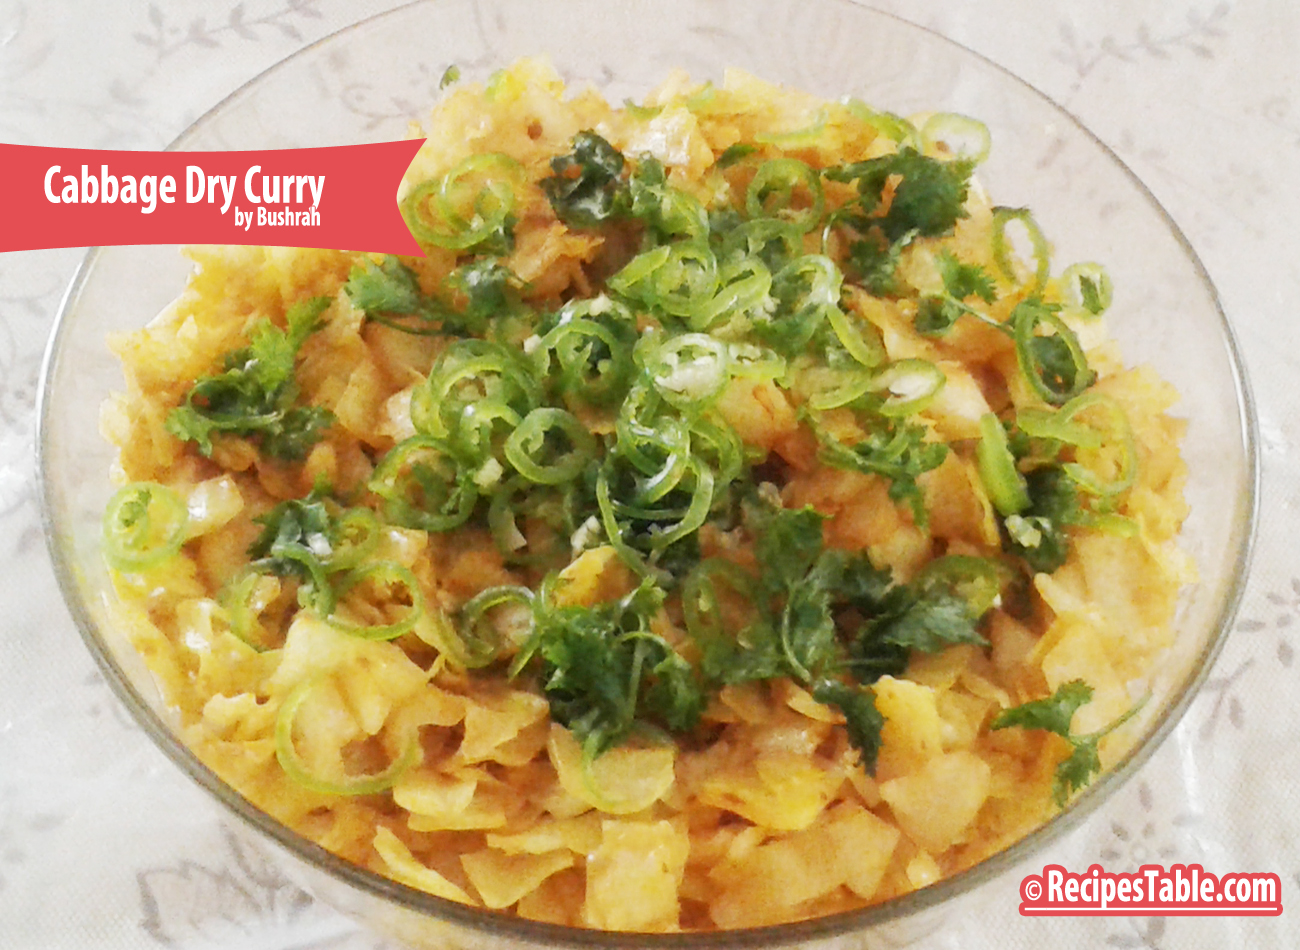 Cabbage Dry Curry recipe